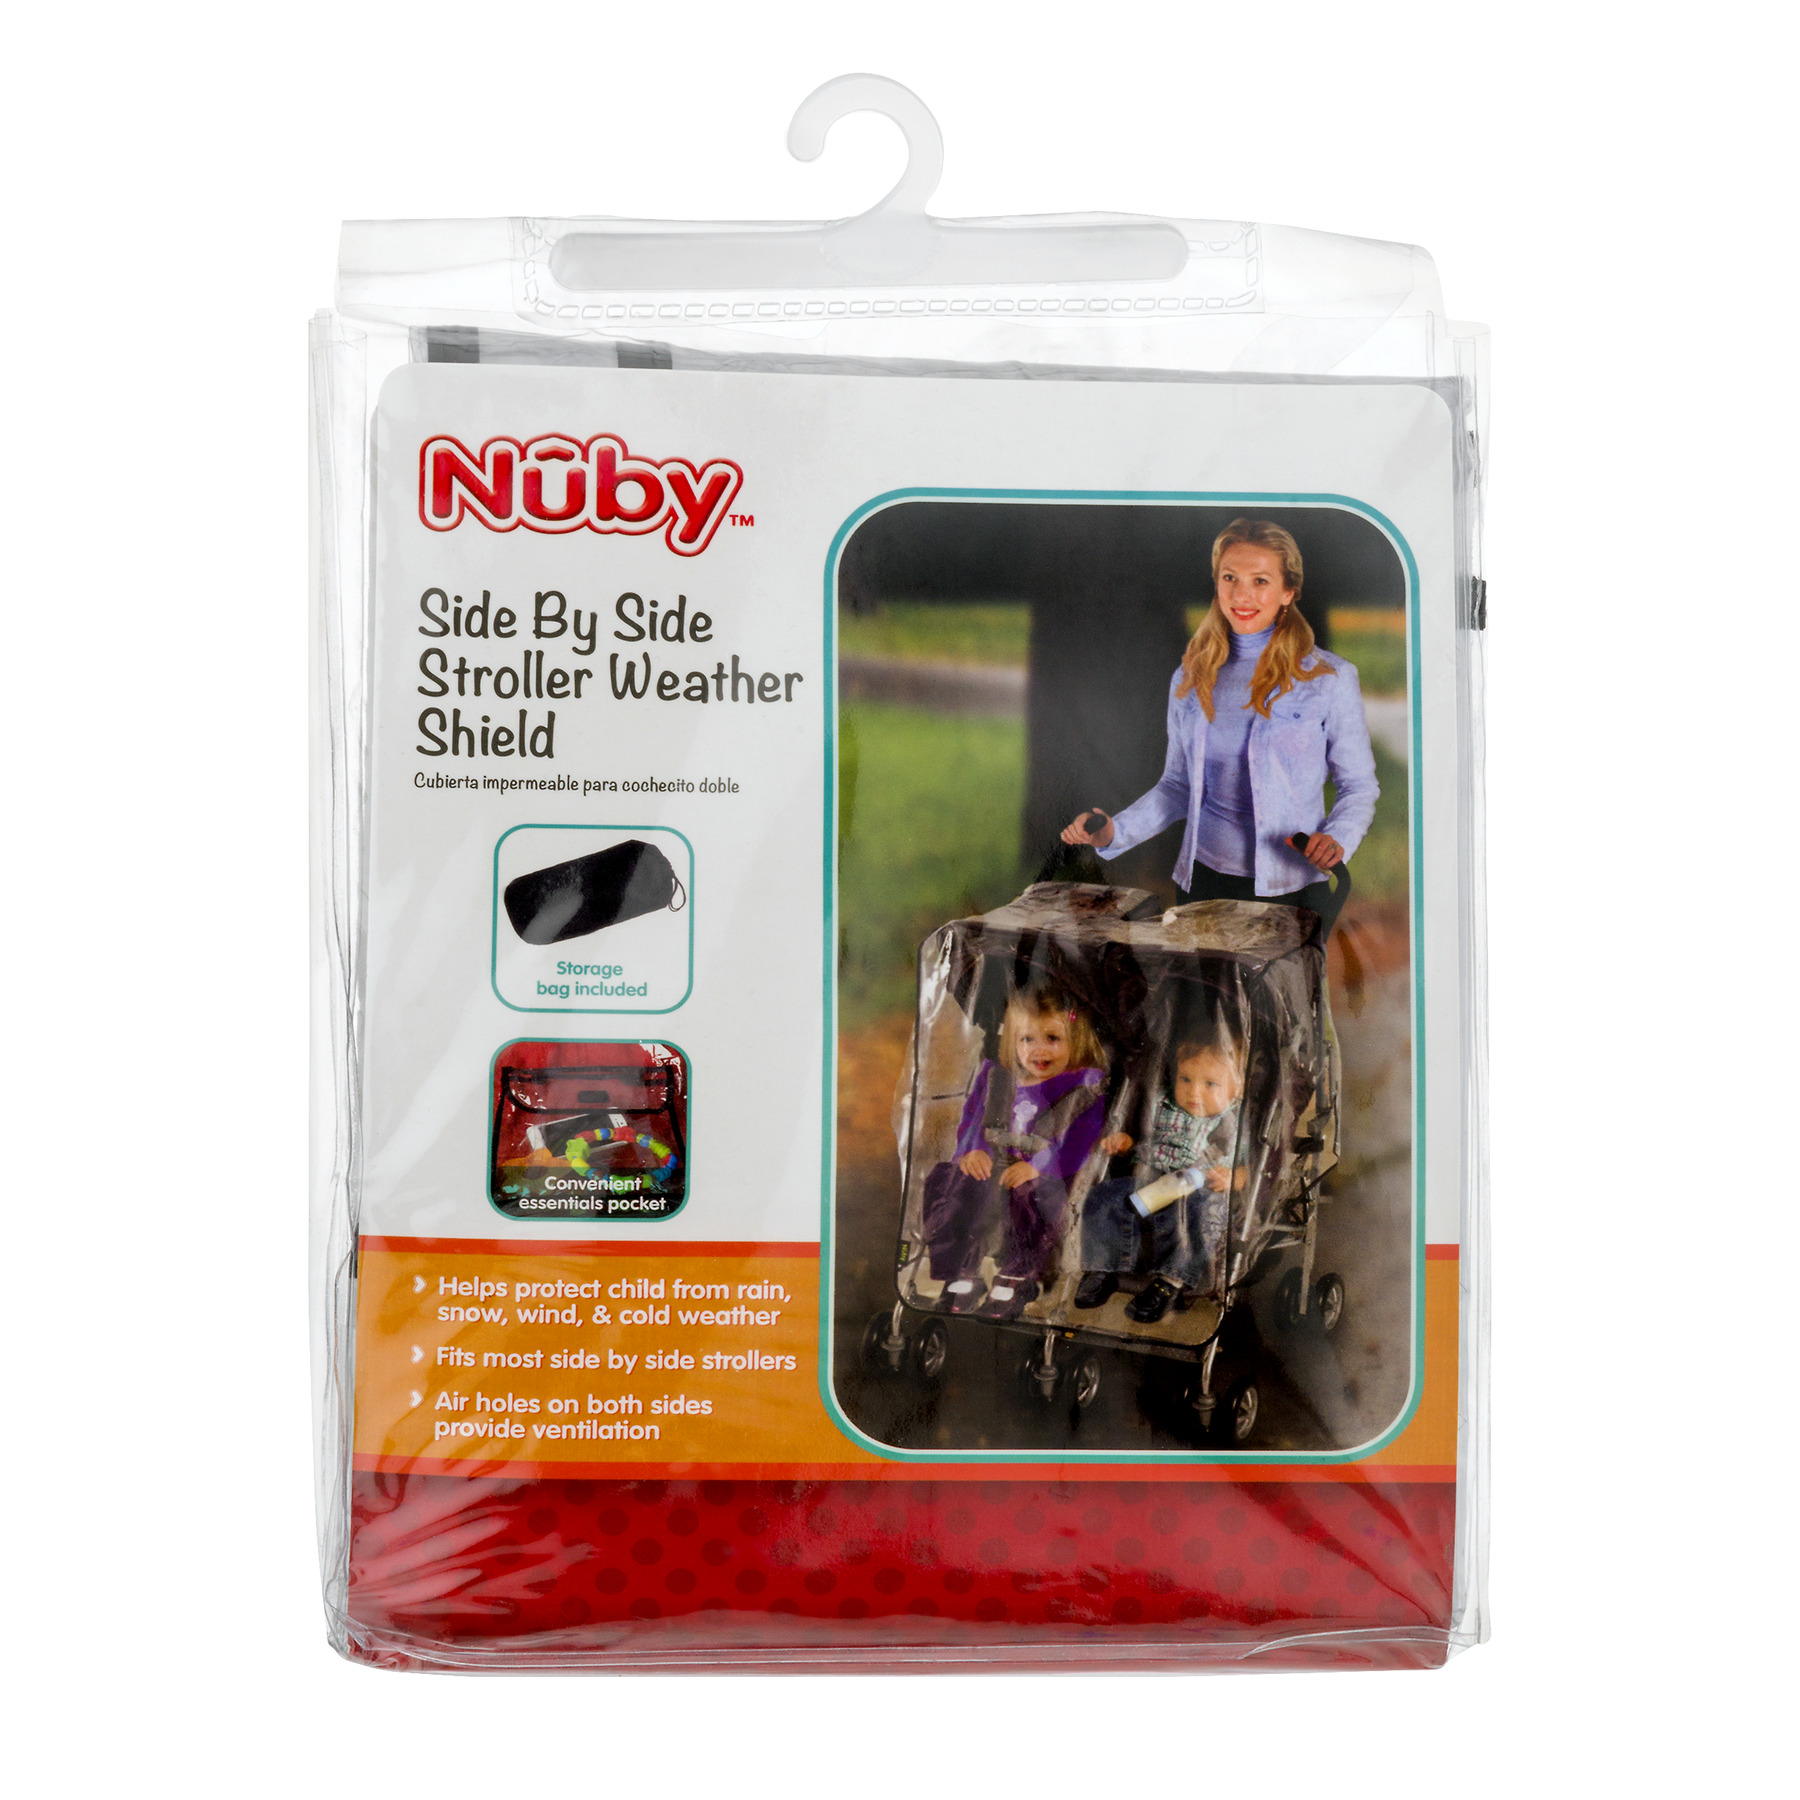 Nuby Side By Side Stroller Weather Shield, 1.0 CT